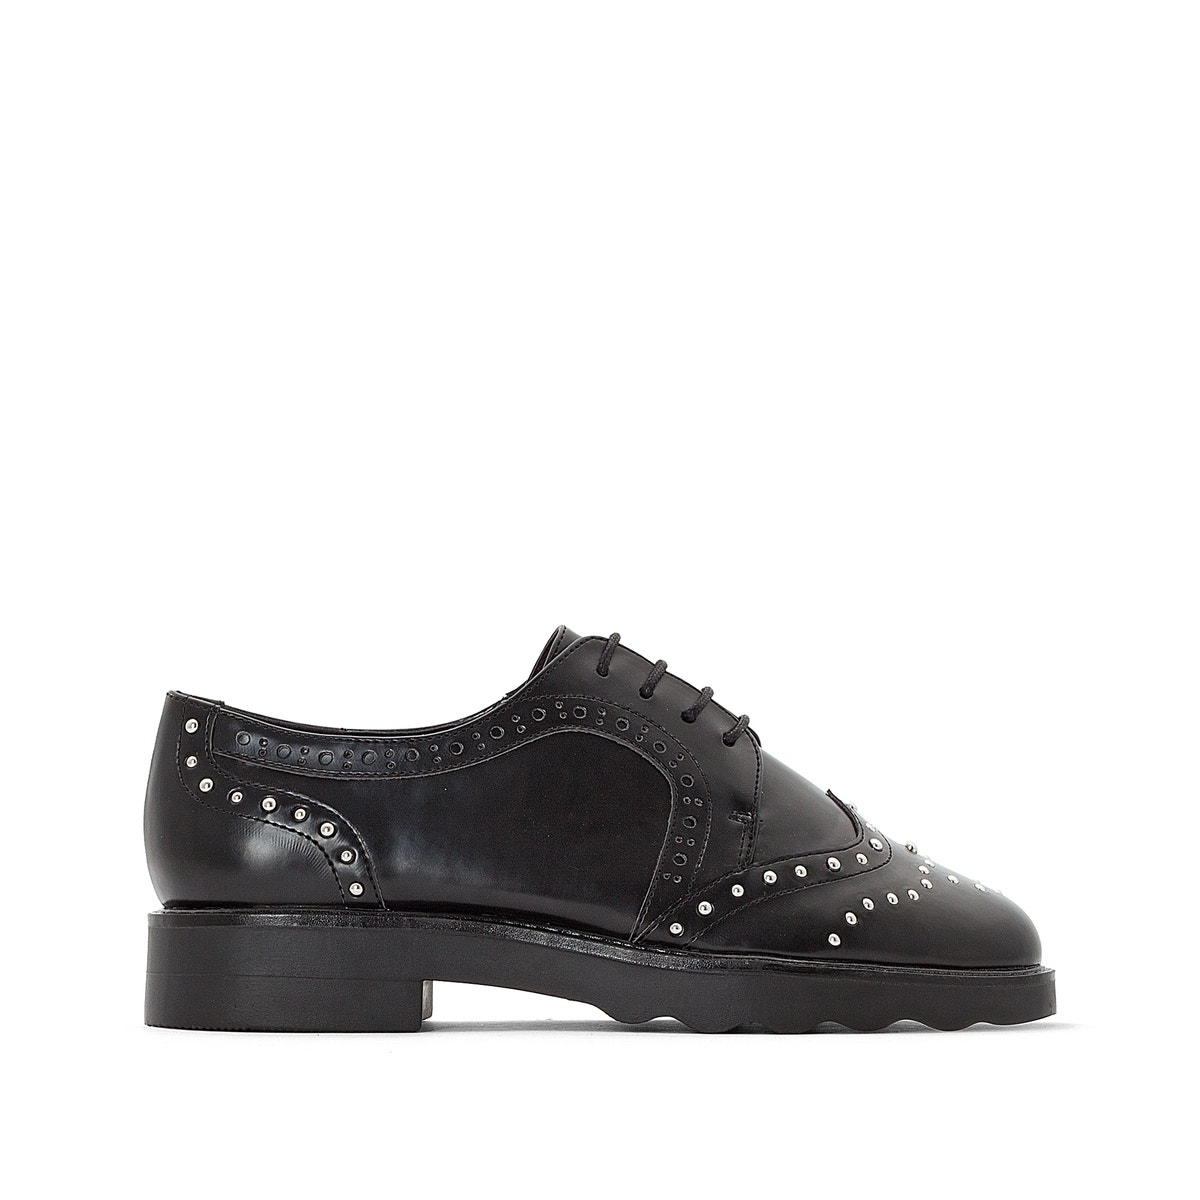 La Redoute Collections - La Redoute Collections 350115958. - 6527 γυναικεια   brogues   loafers